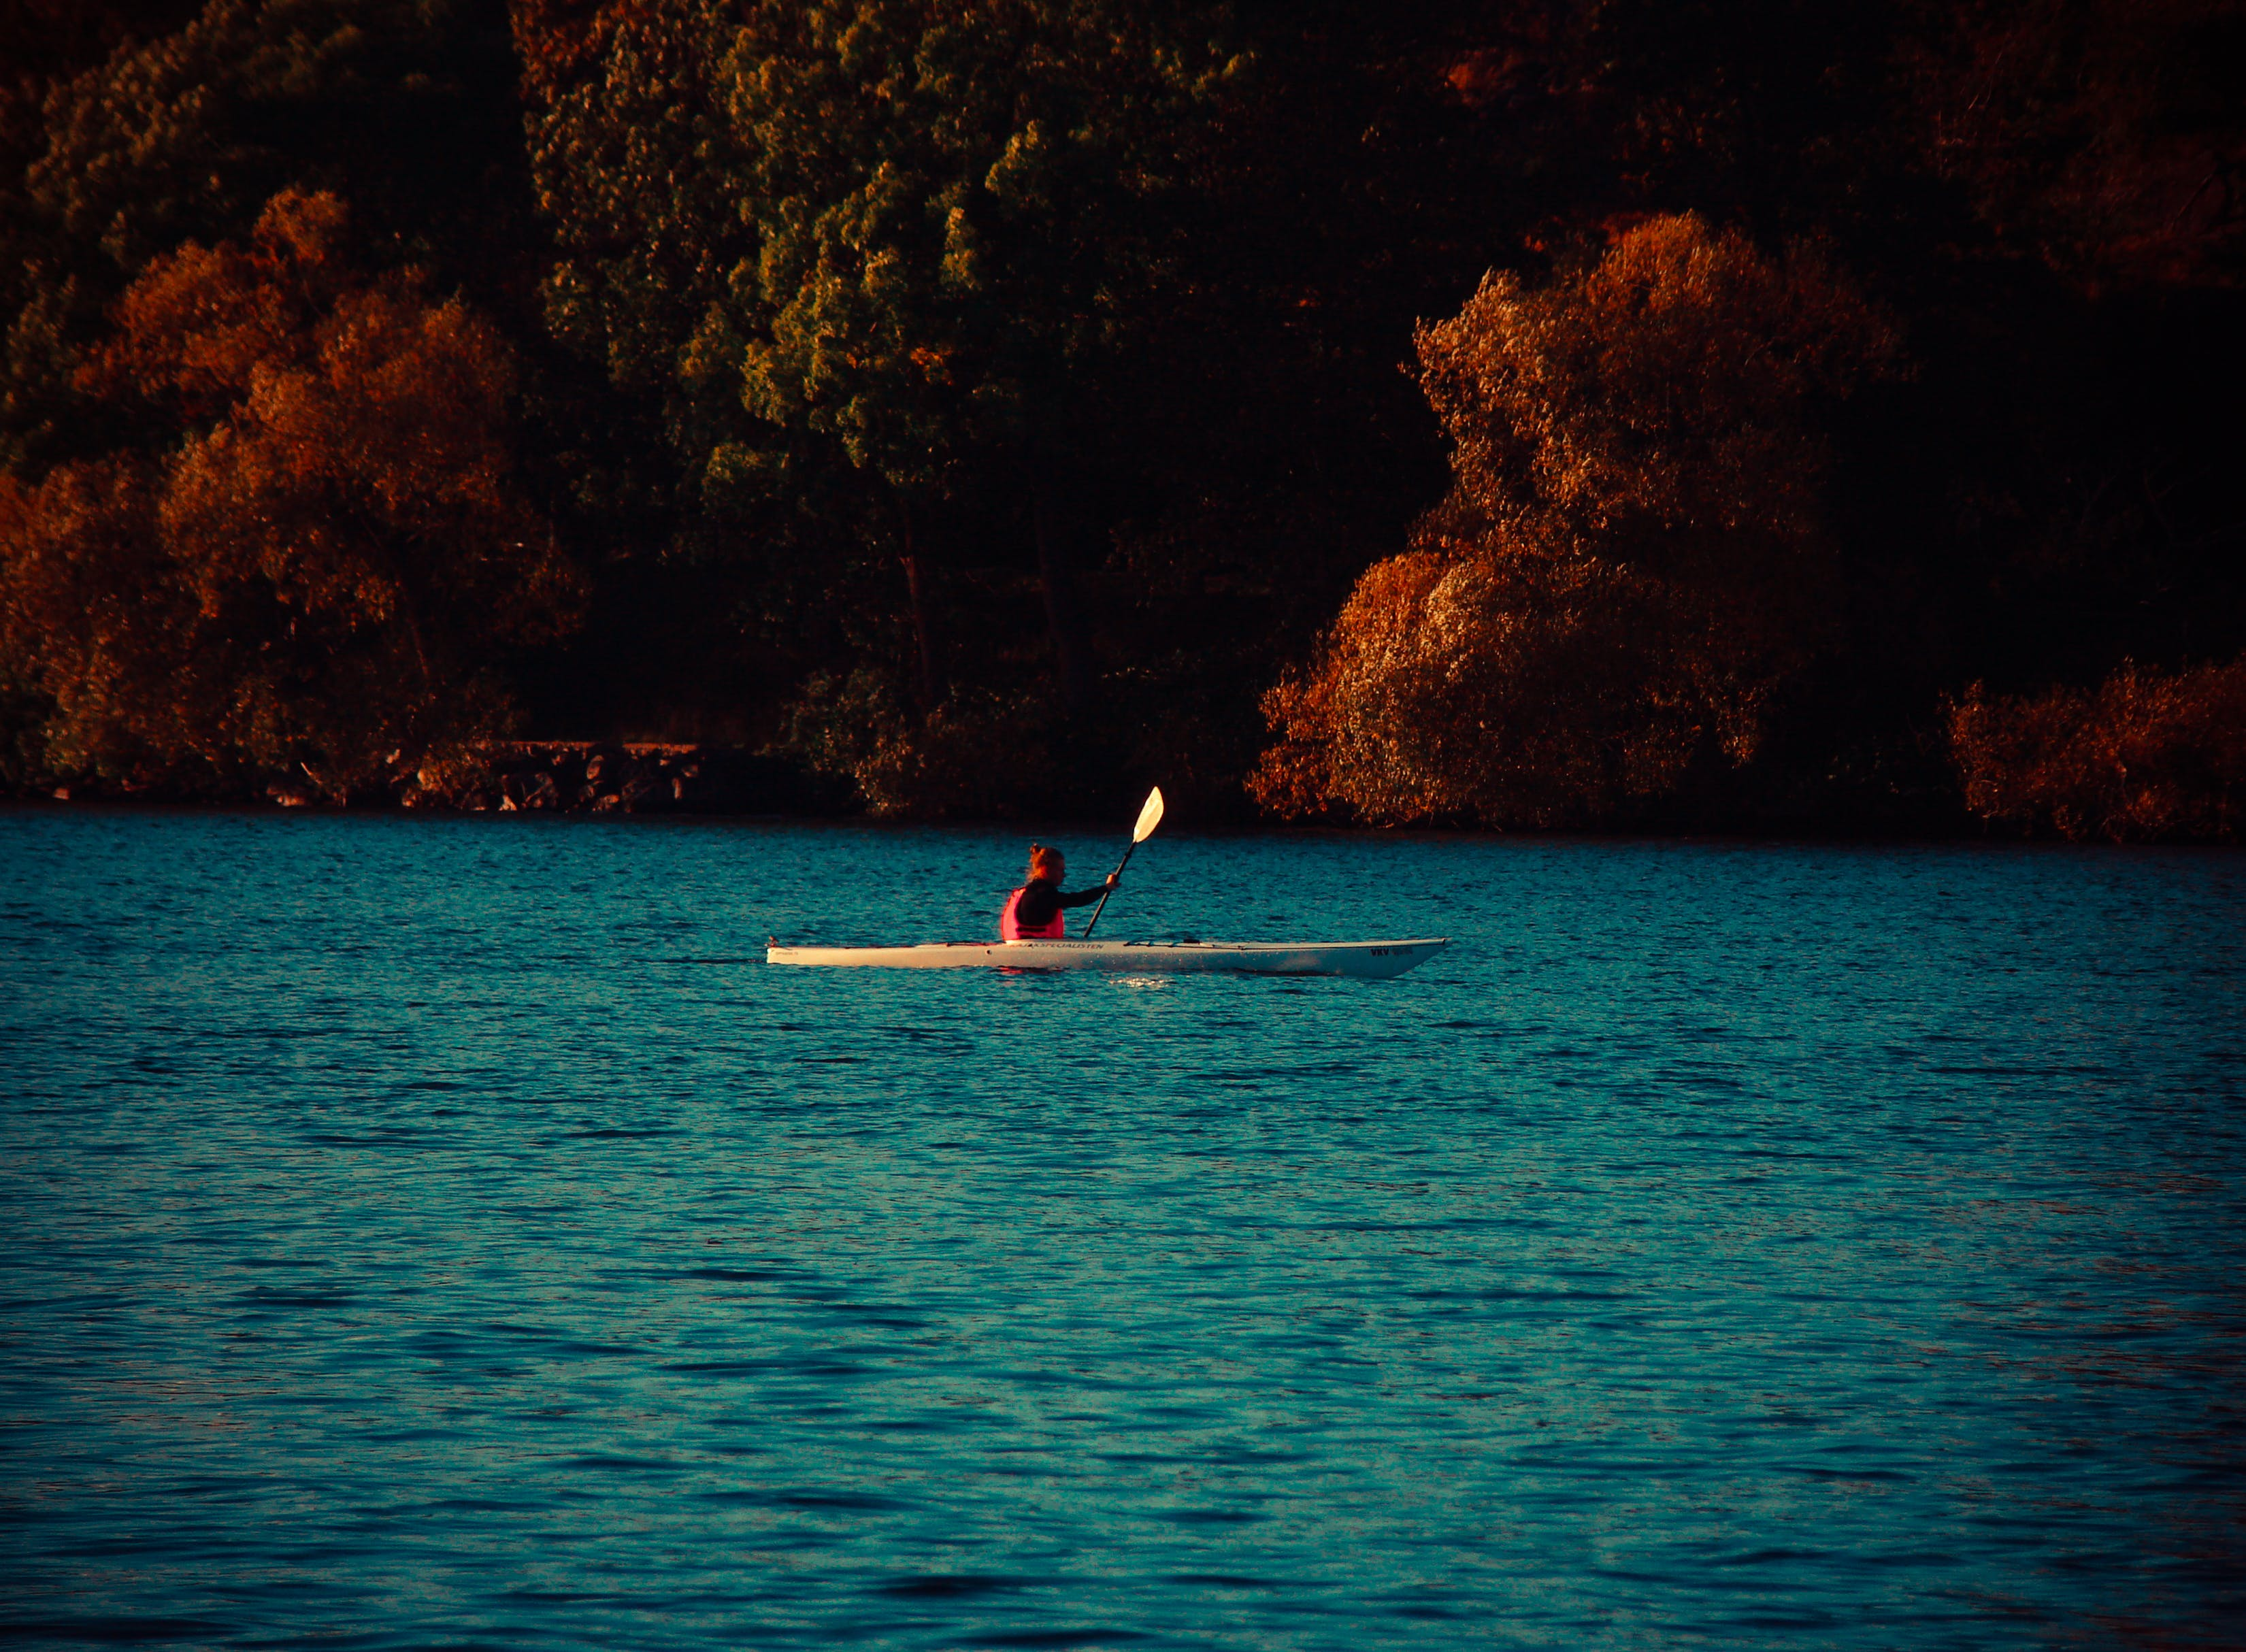 Man in Kayak on Body of Water